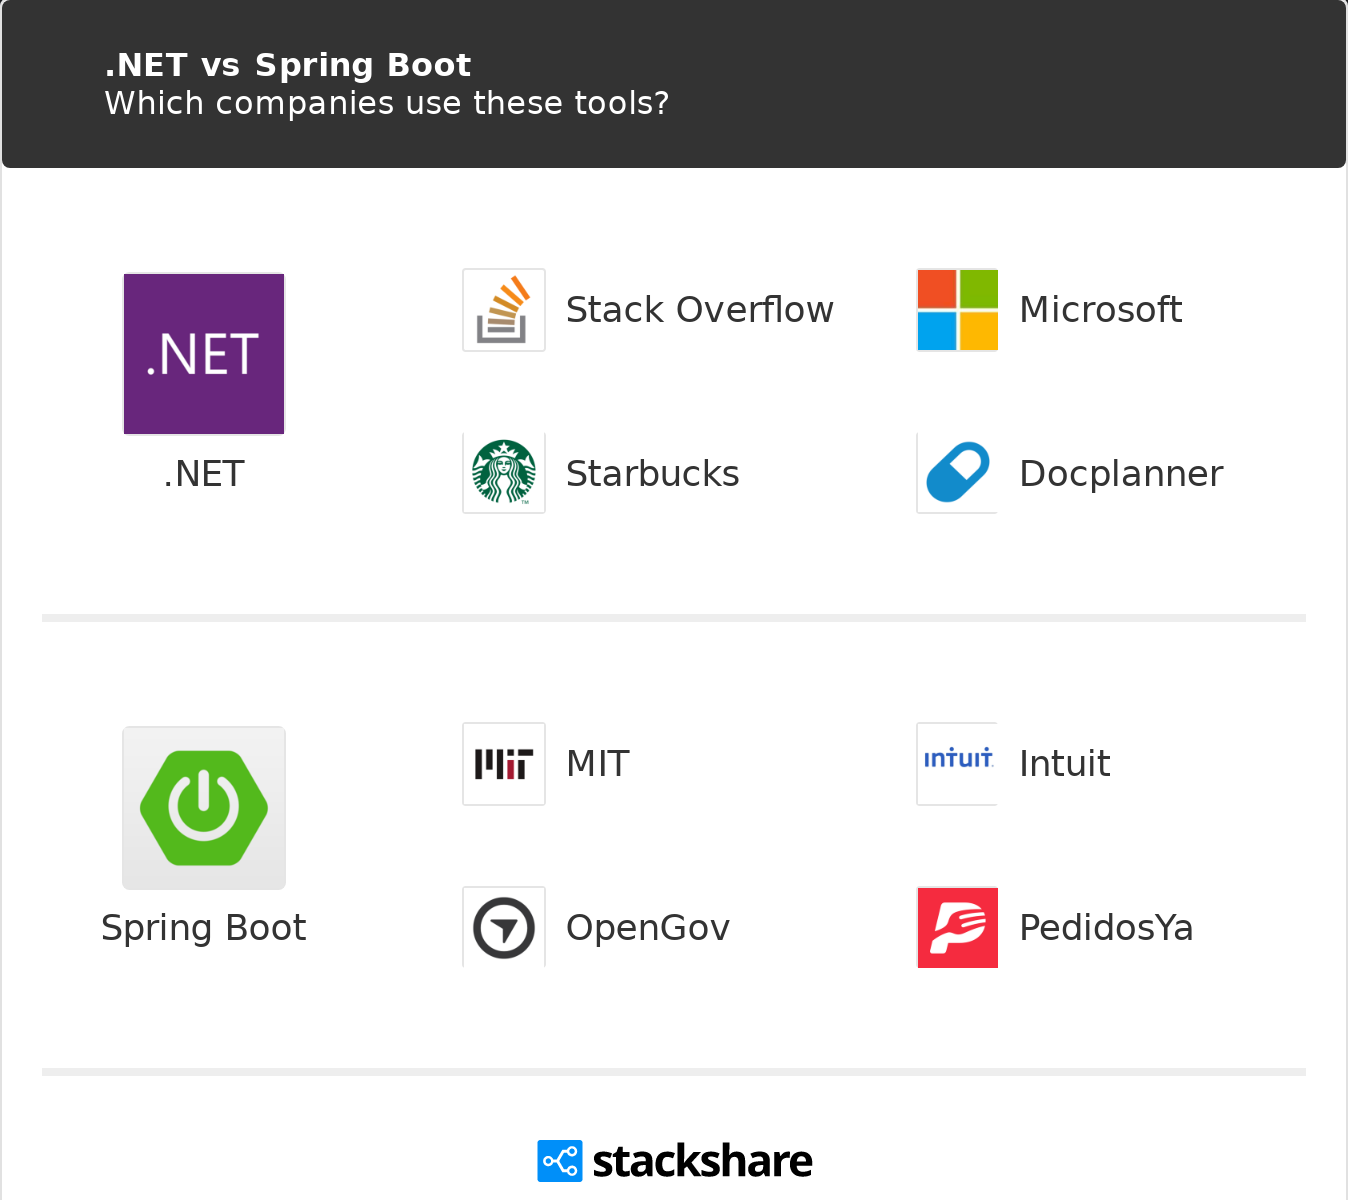 NET vs Spring Boot | What are the differences?